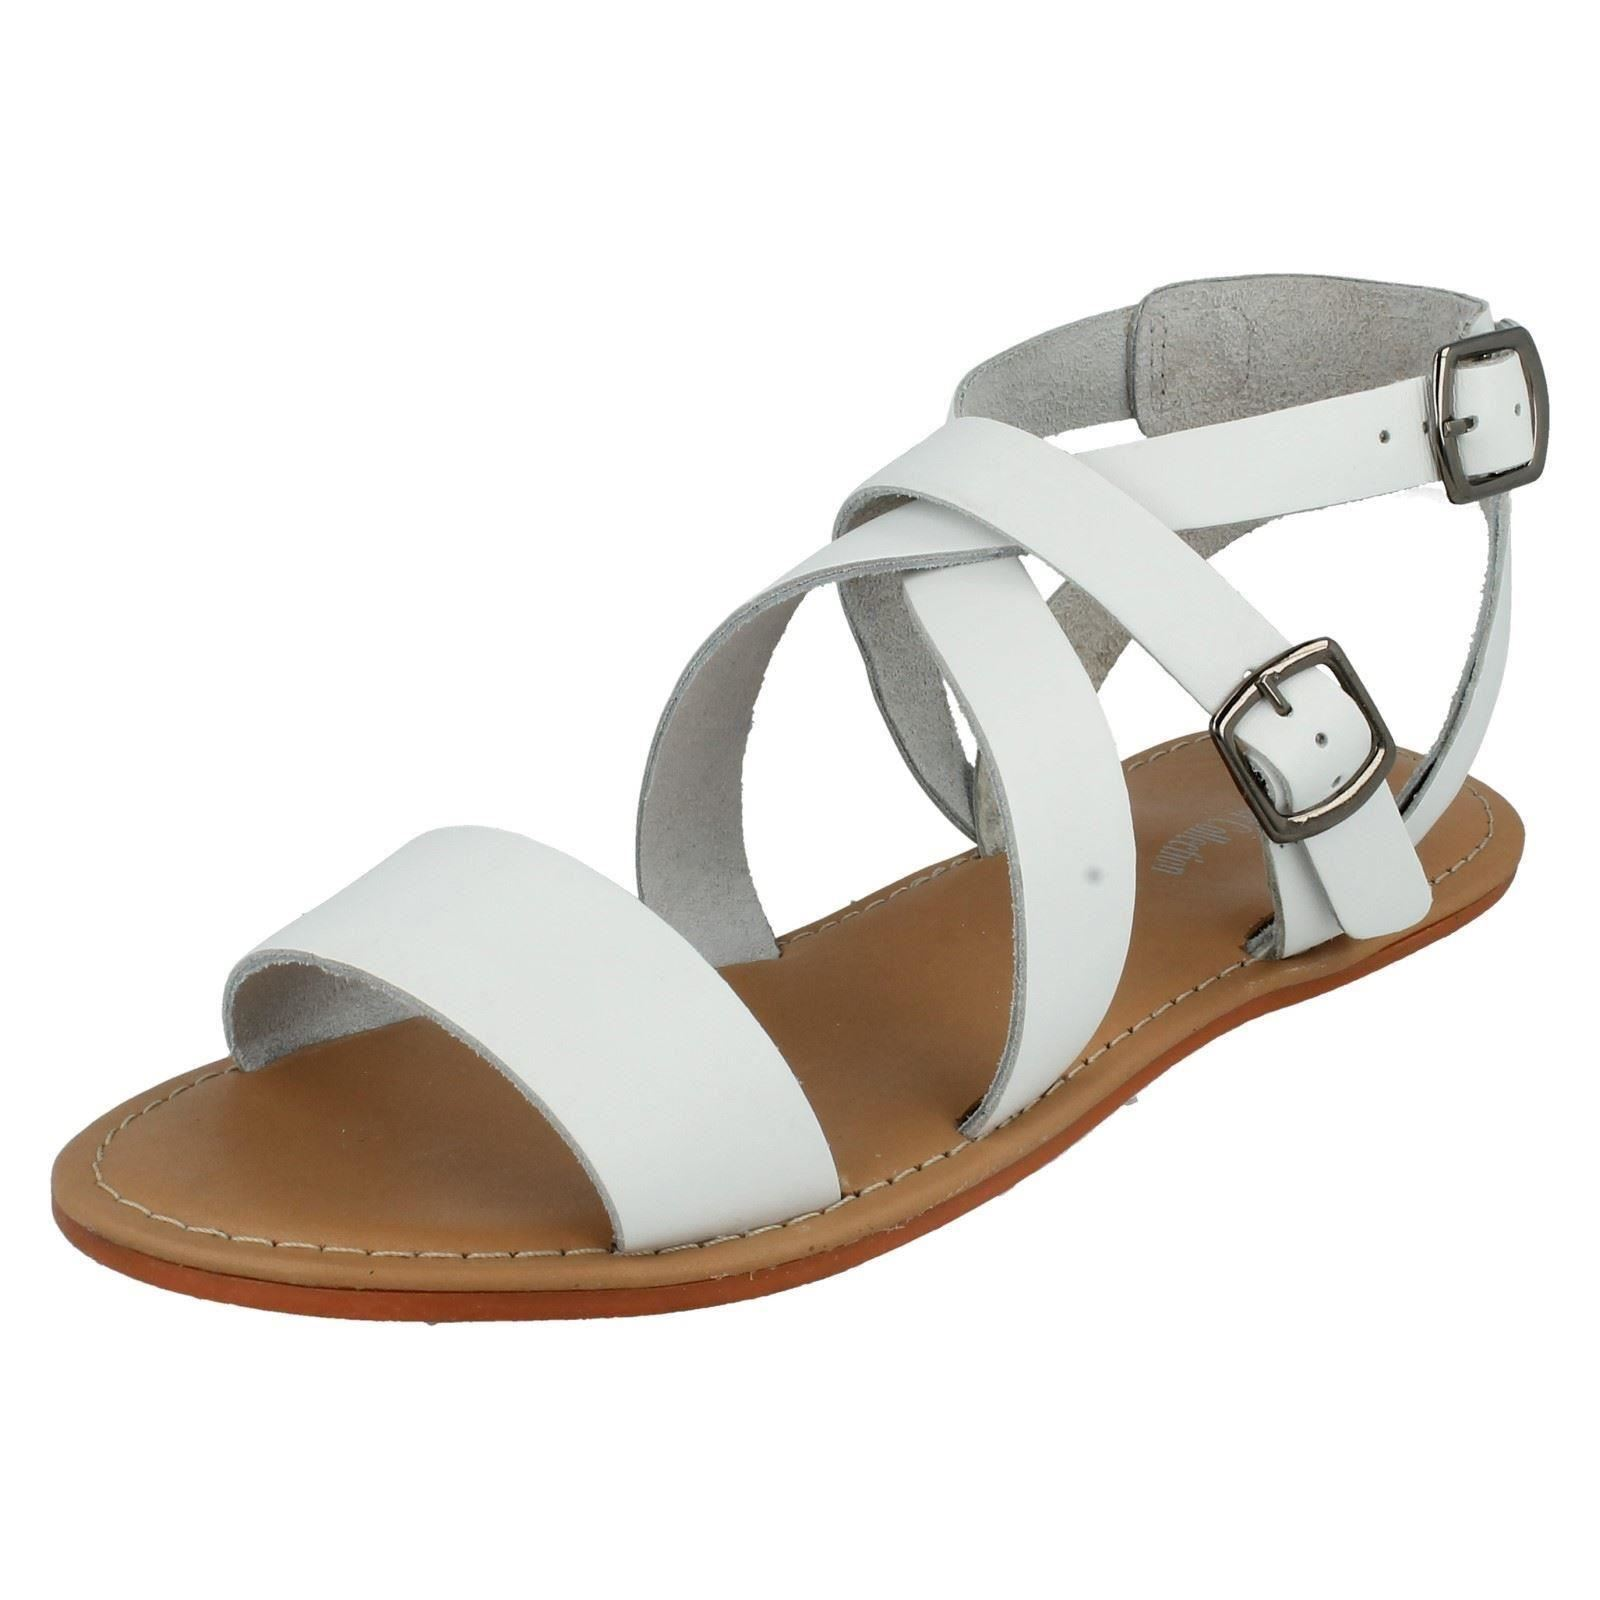 Leather Leather Collection F0924 Ladies White Leather Leather Slingback Buckle Sandals 2fff52